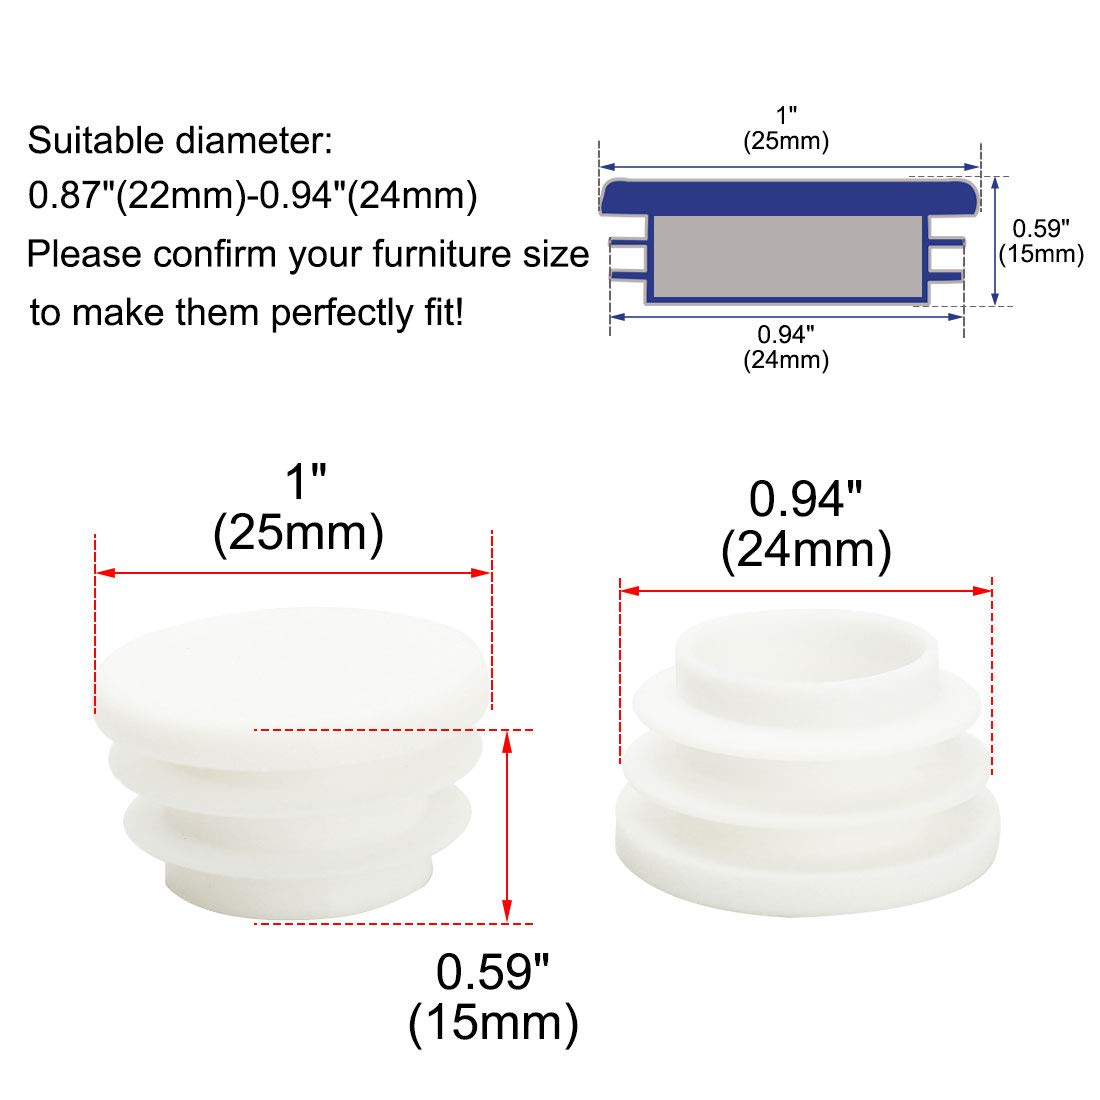 0.51-0.59 Inner Dia Furniture Glide Chair Feet Floor Protector uxcell/® 5//8 16mm OD Plastic Round Ribbed Tube Insert Pipe Tubing End Covers Caps White 8pcs